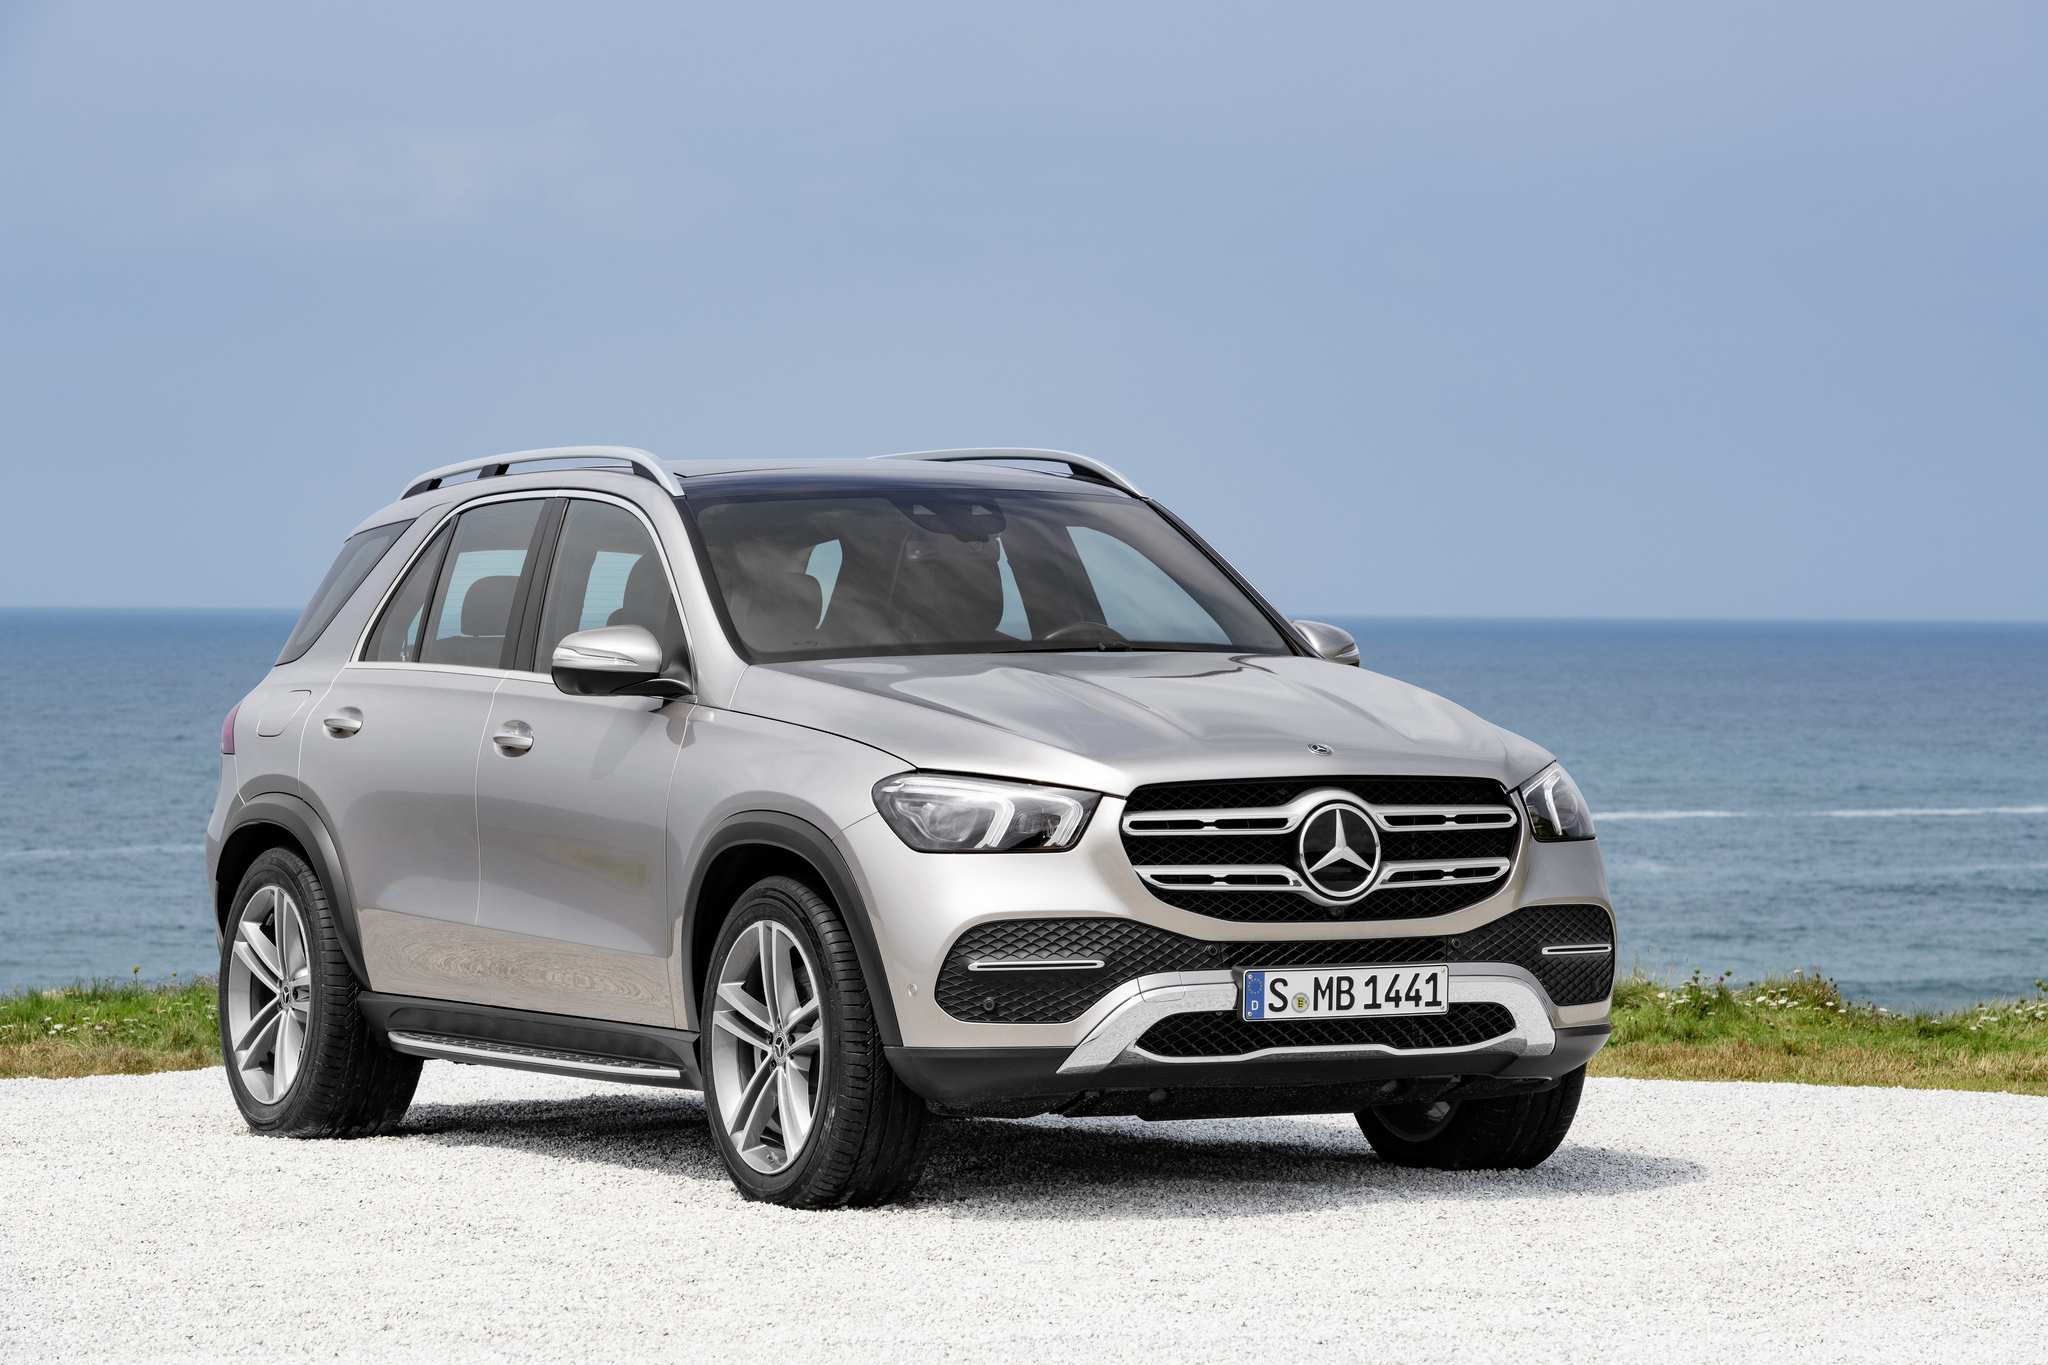 83 The Best 2019 Mercedes GLE Review